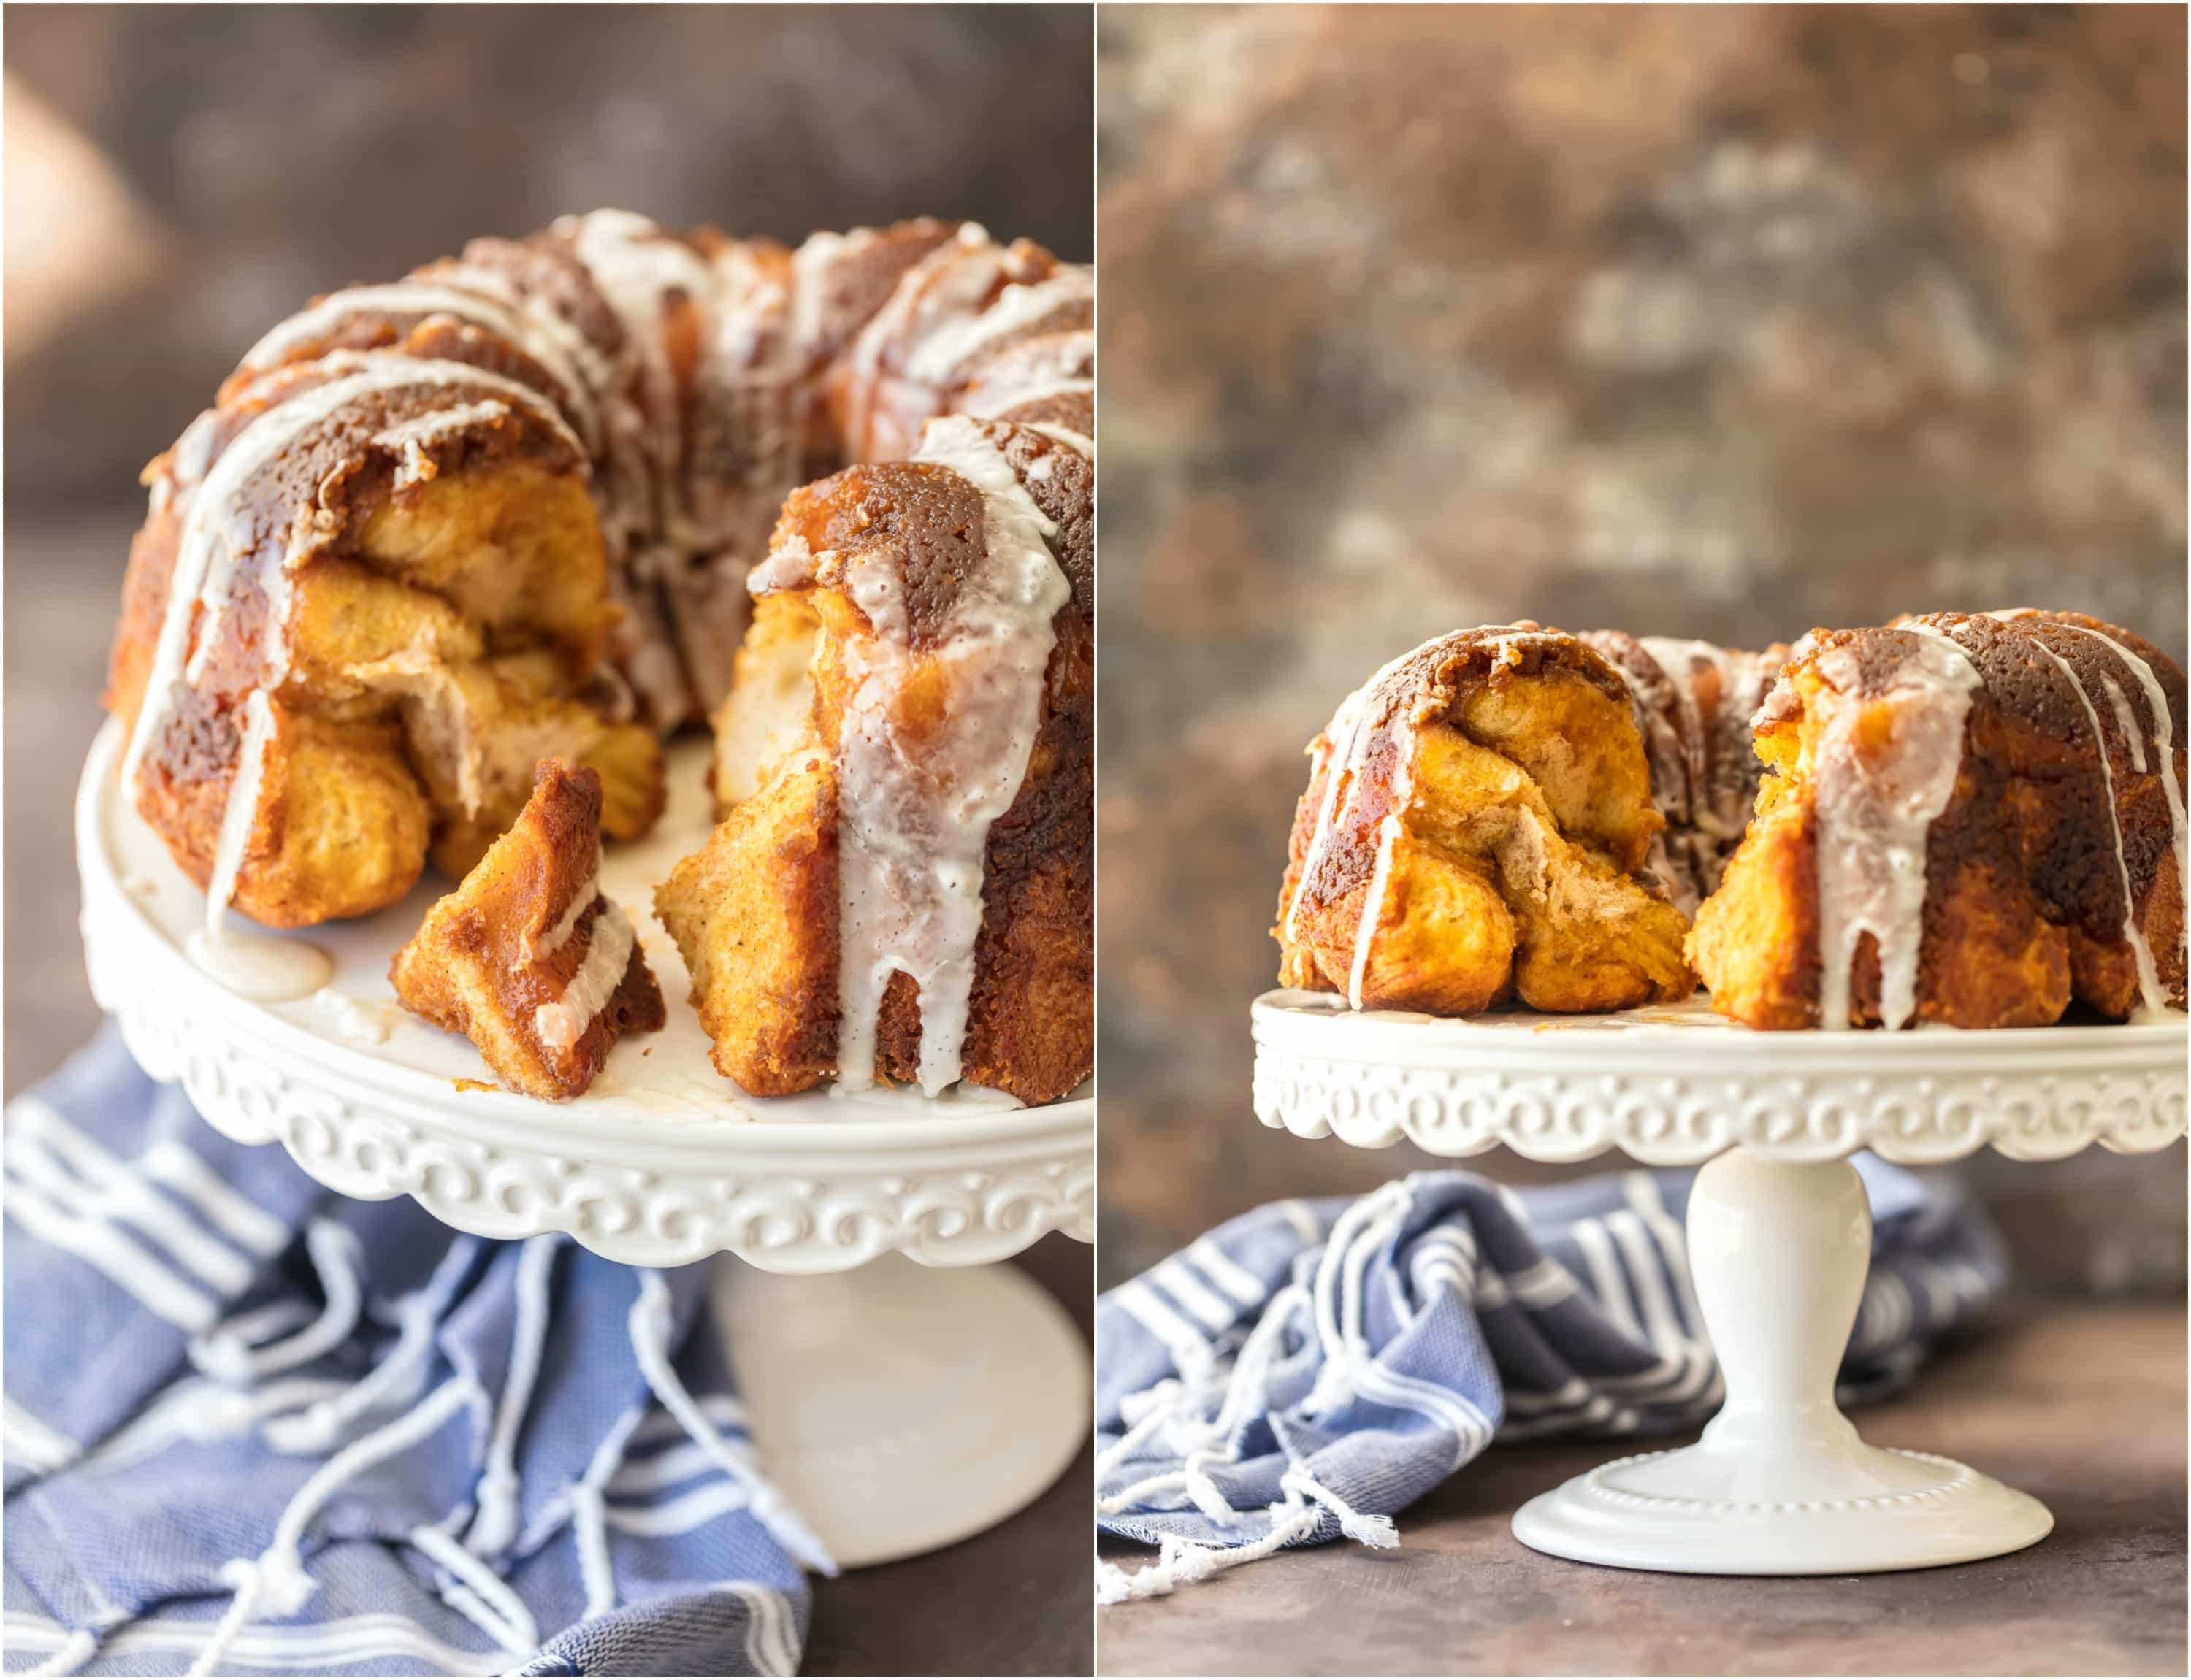 PUMPKIN PIE MONKEY BREAD is the ultimate Thanksgiving breakfast! This ooey gooey monkey bread tastes just like Pumpkin Pie and is pretty to boot! Add some icing glaze to take it over the top!